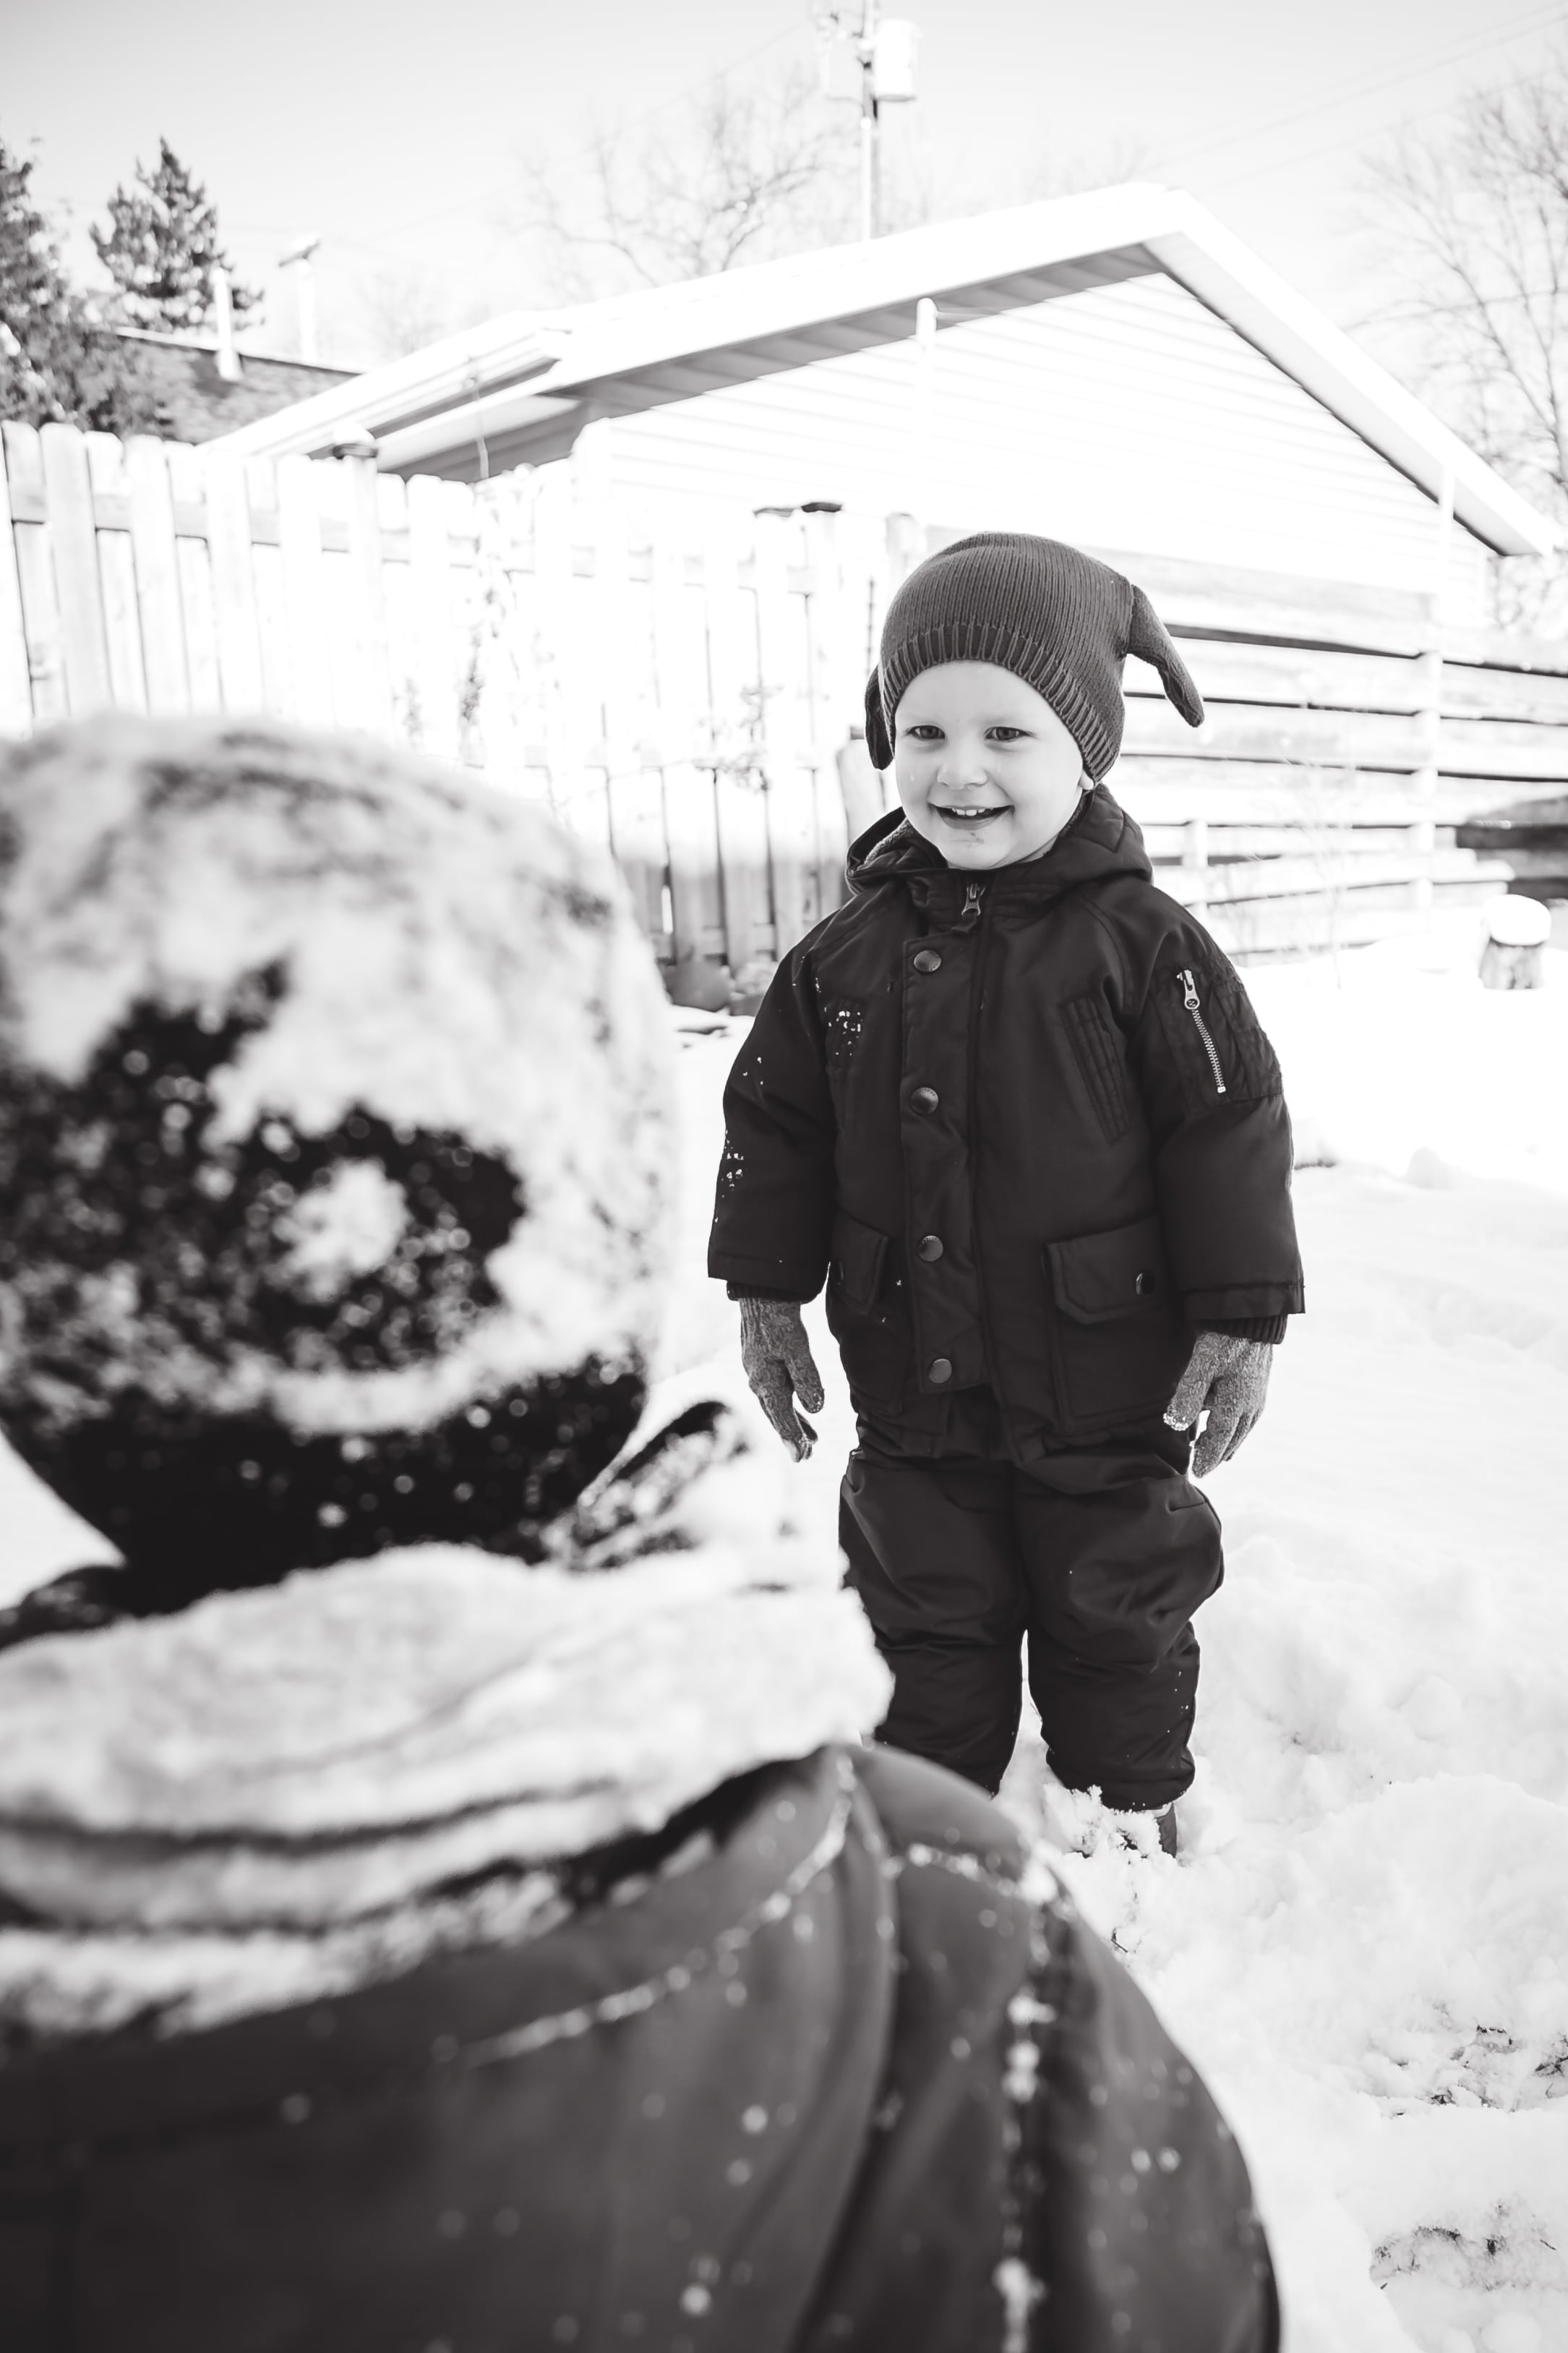 Rocco HATED the snow. The only time he was happy was this one moment. Ben can turn his frown upside down pretty easily.